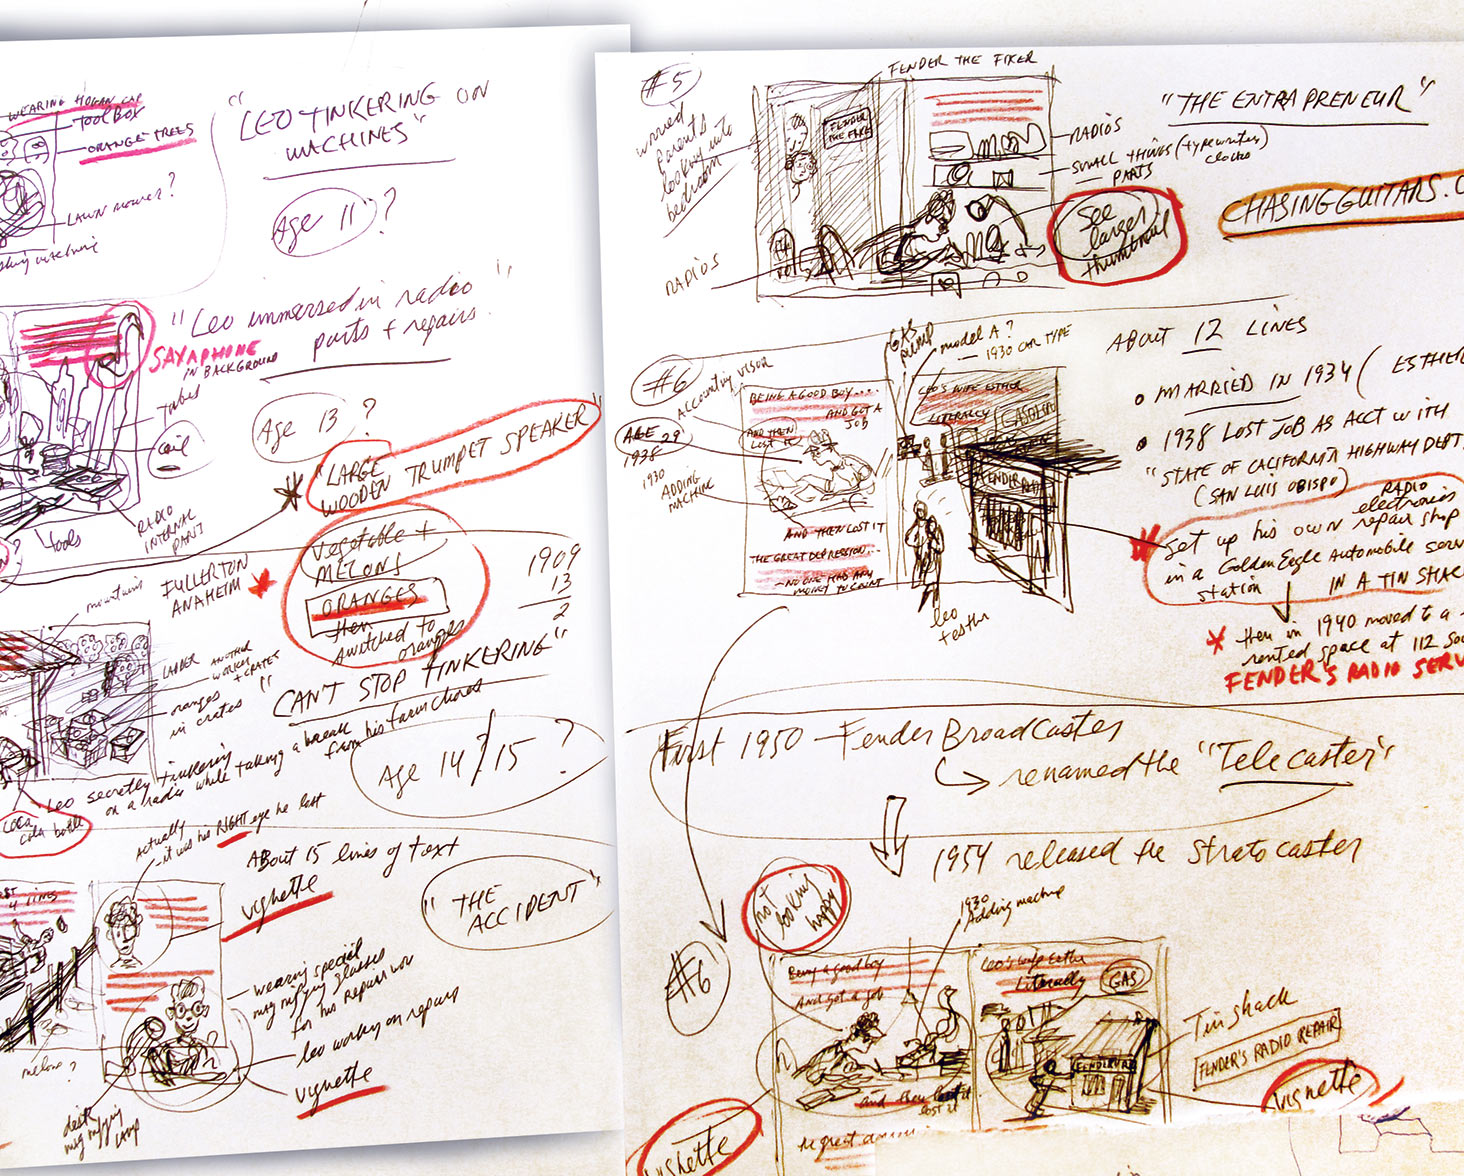 a sheet of rough preliminary storyboard thumbnail sketches for  Gizmos, Gadgets, and Guitars  –to begin working out which actions and events in the story will be illustrated…